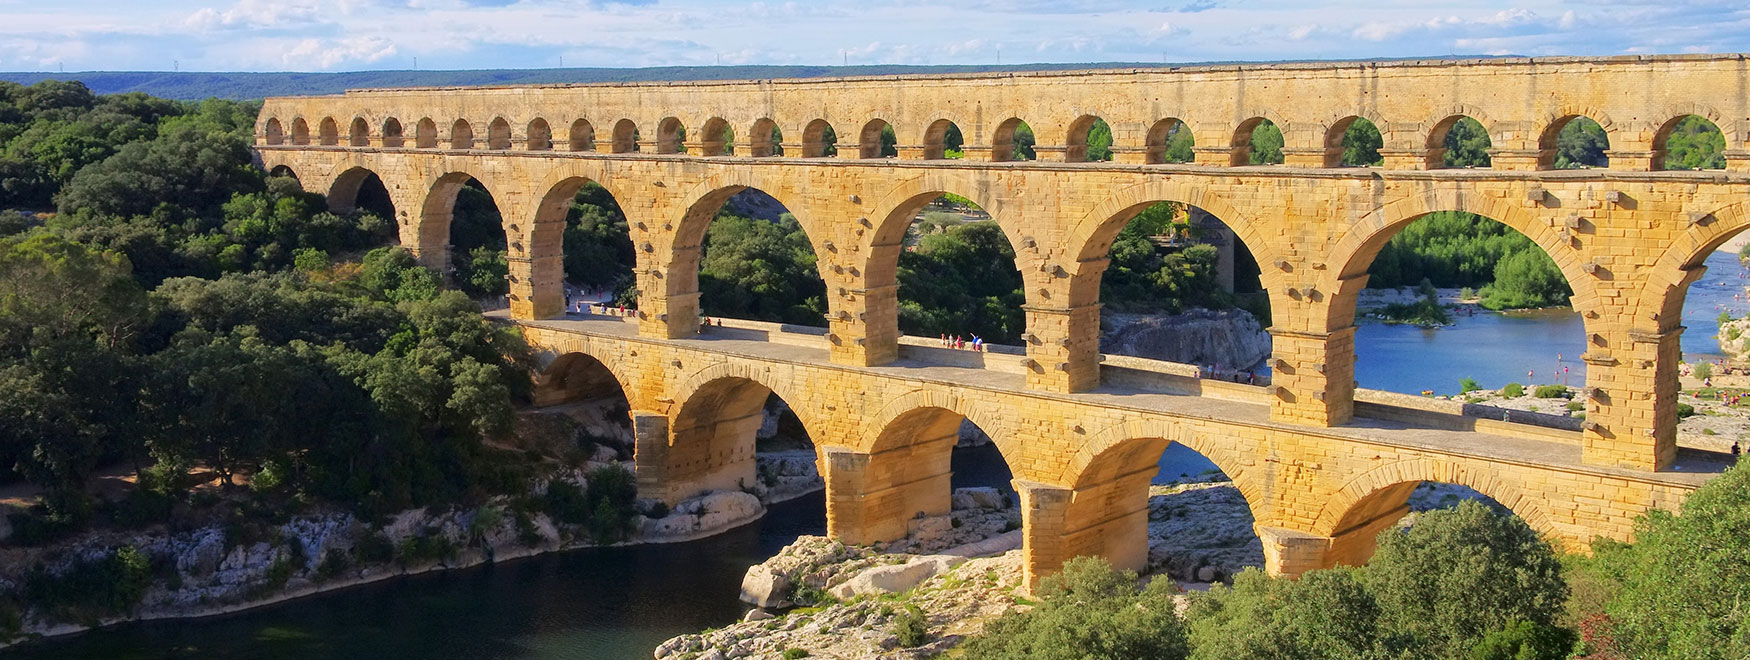 Excursion to Uzès, Pont du Gard and Avignon